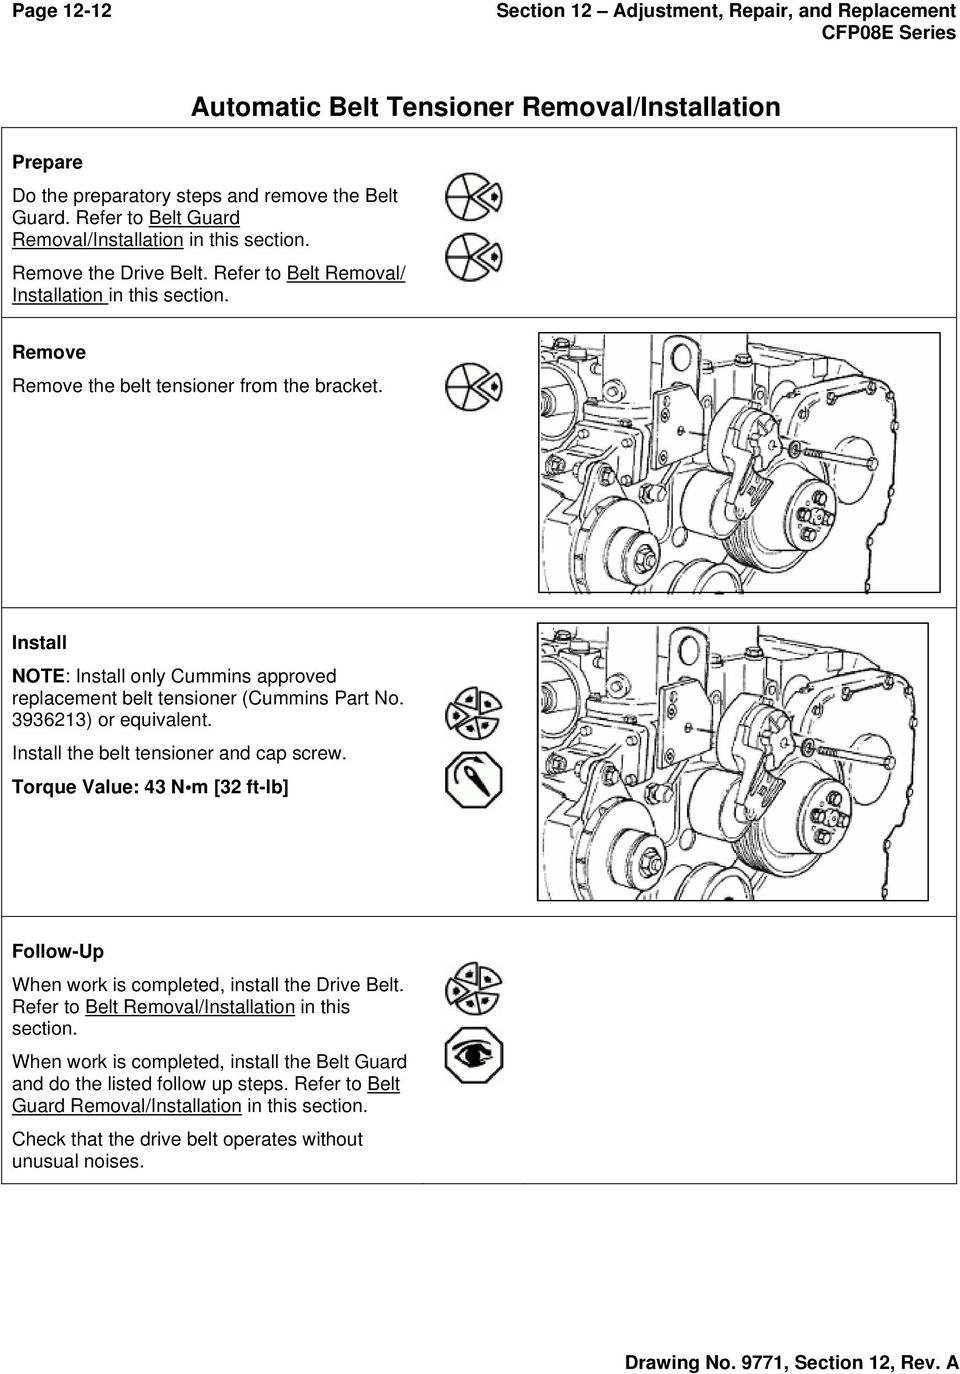 Install NOTE: Install only Cummins approved replacement belt tensioner (Cummins Part No. 3936213) or equivalent. Install the belt tensioner and cap screw.